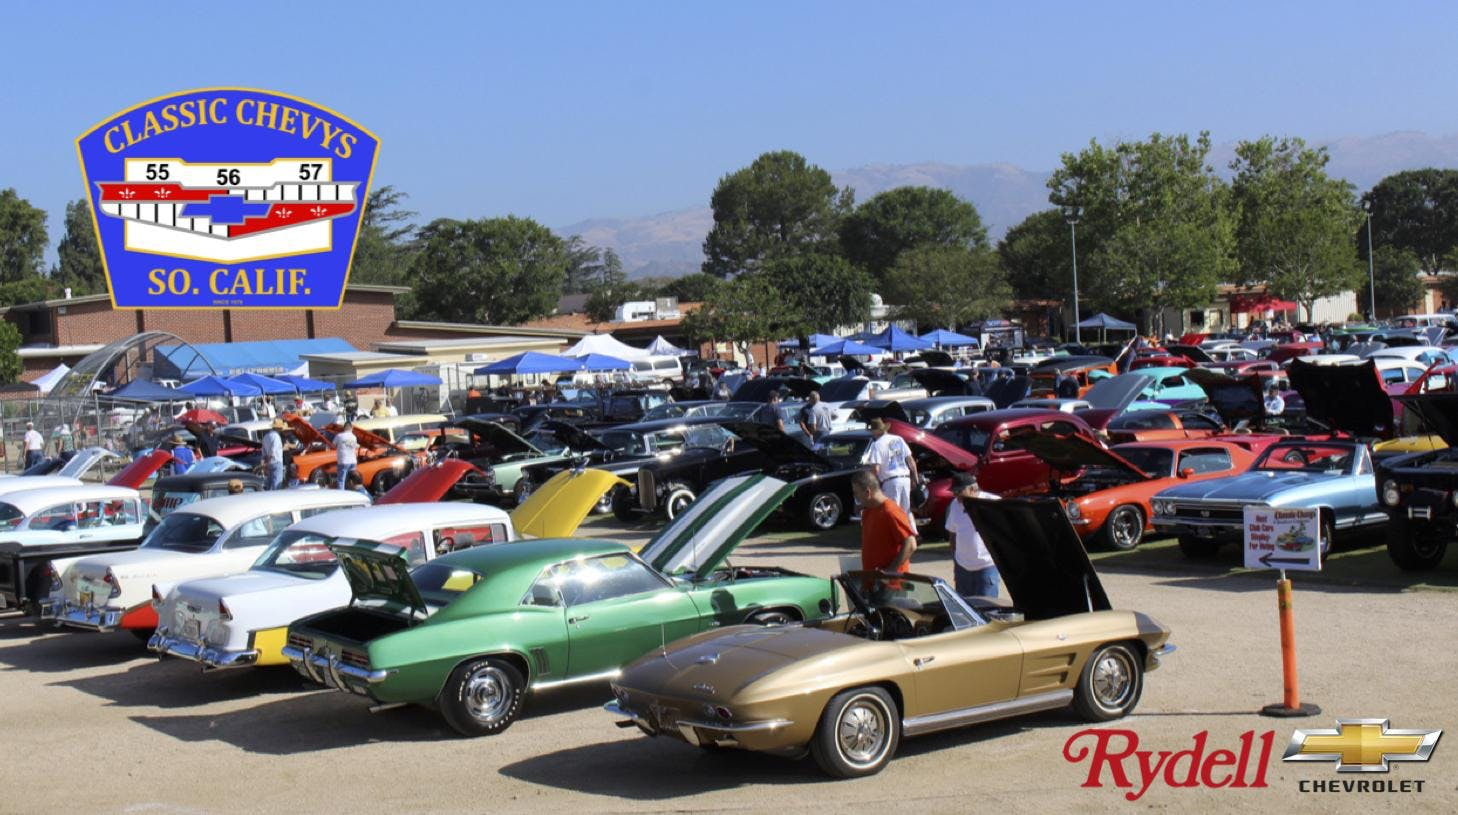 Classic Chevys Of Southern California Annual Car Show At Rancho - Classic car show california